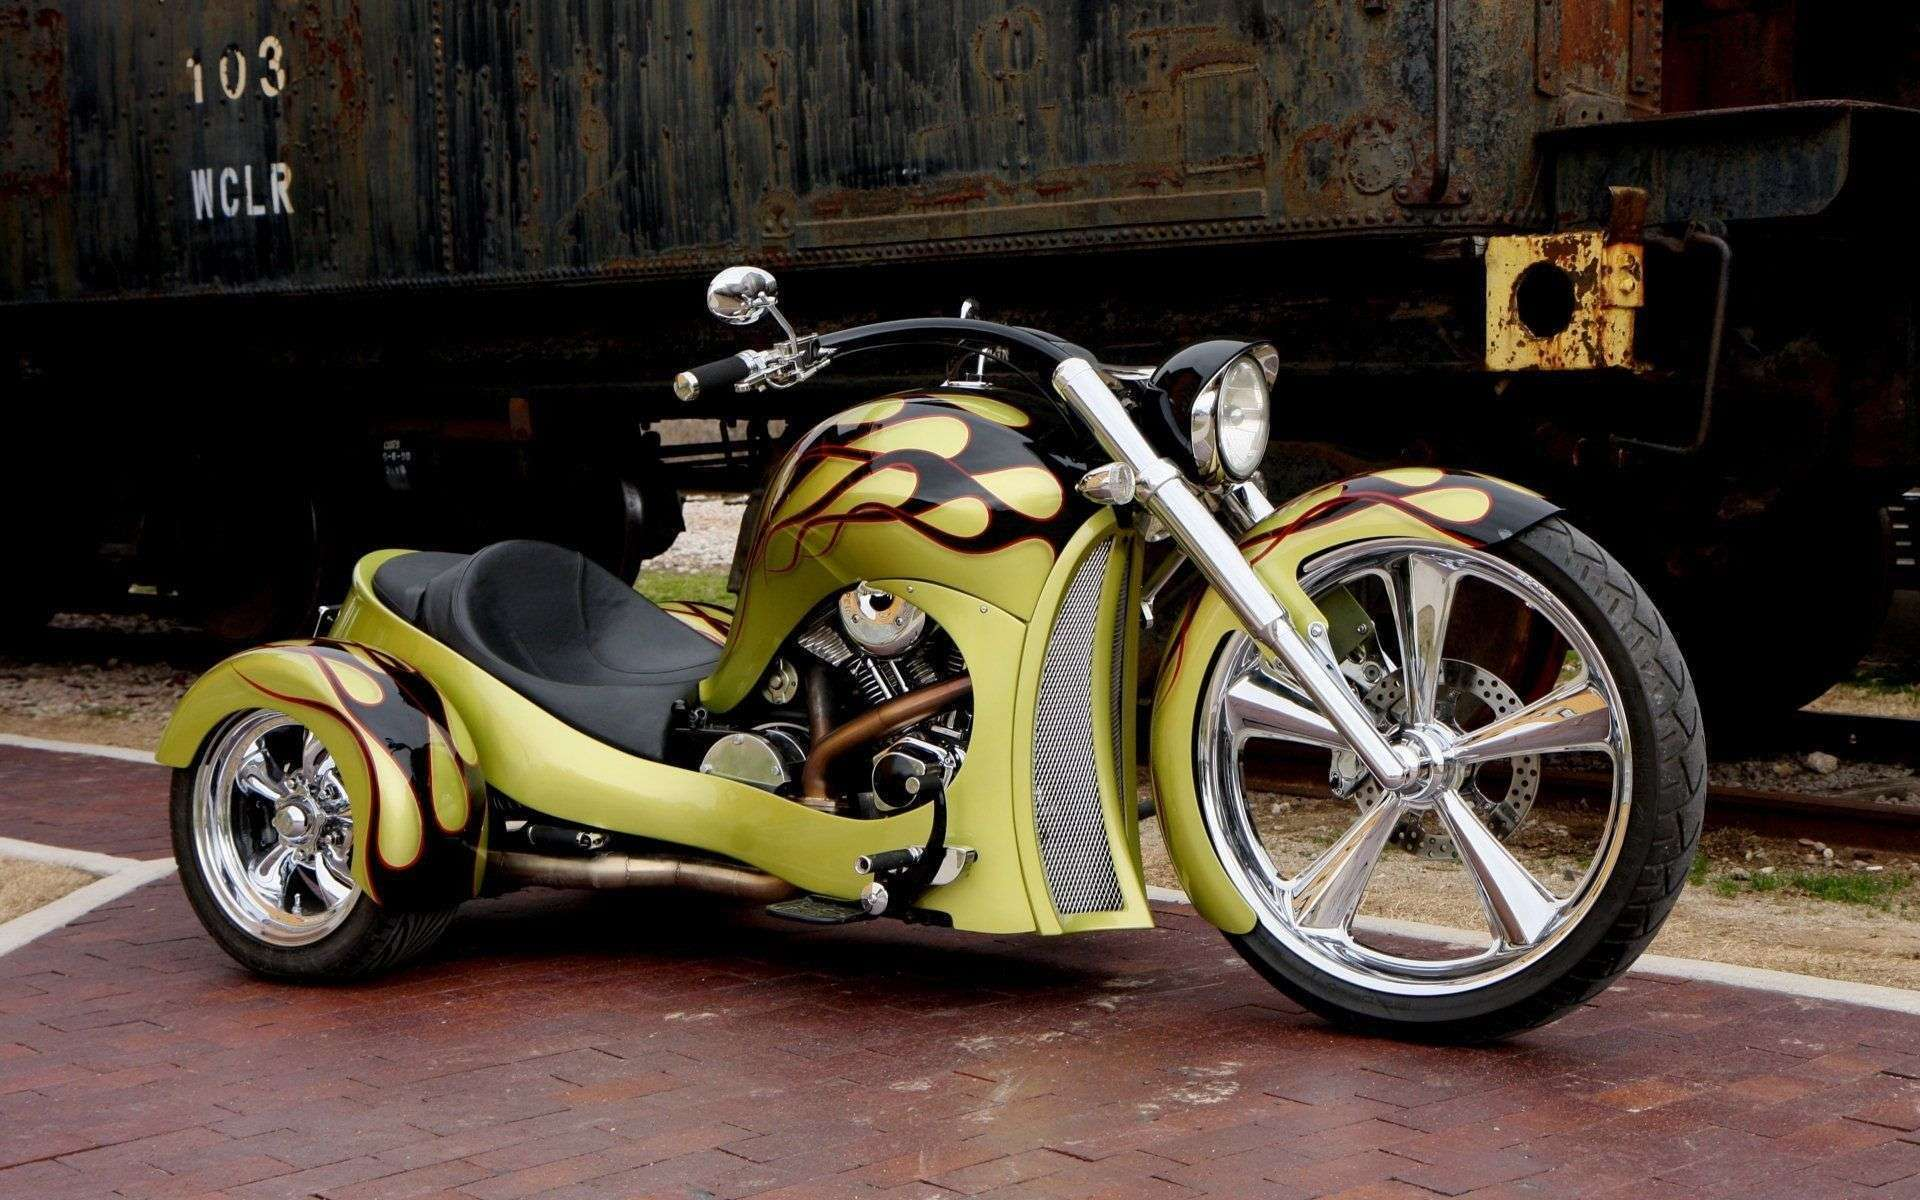 cars wallpapers motorcycles harley - photo #2